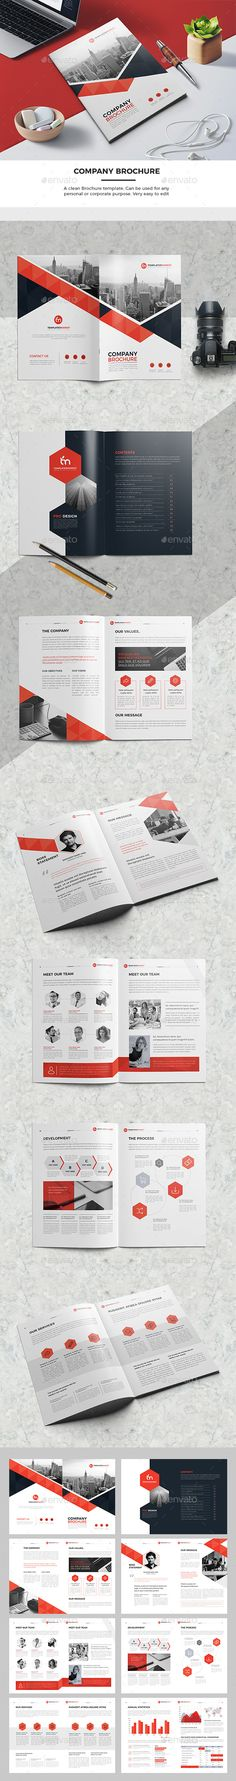 TM Company Brochure Corporate Brochure Template by Templates-Market. Brochure Indesign, Template Brochure, Corporate Brochure Design, Company Brochure, Brochure Layout, Report Template, Creative Brochure, Magazine Ideas, Magazine Design